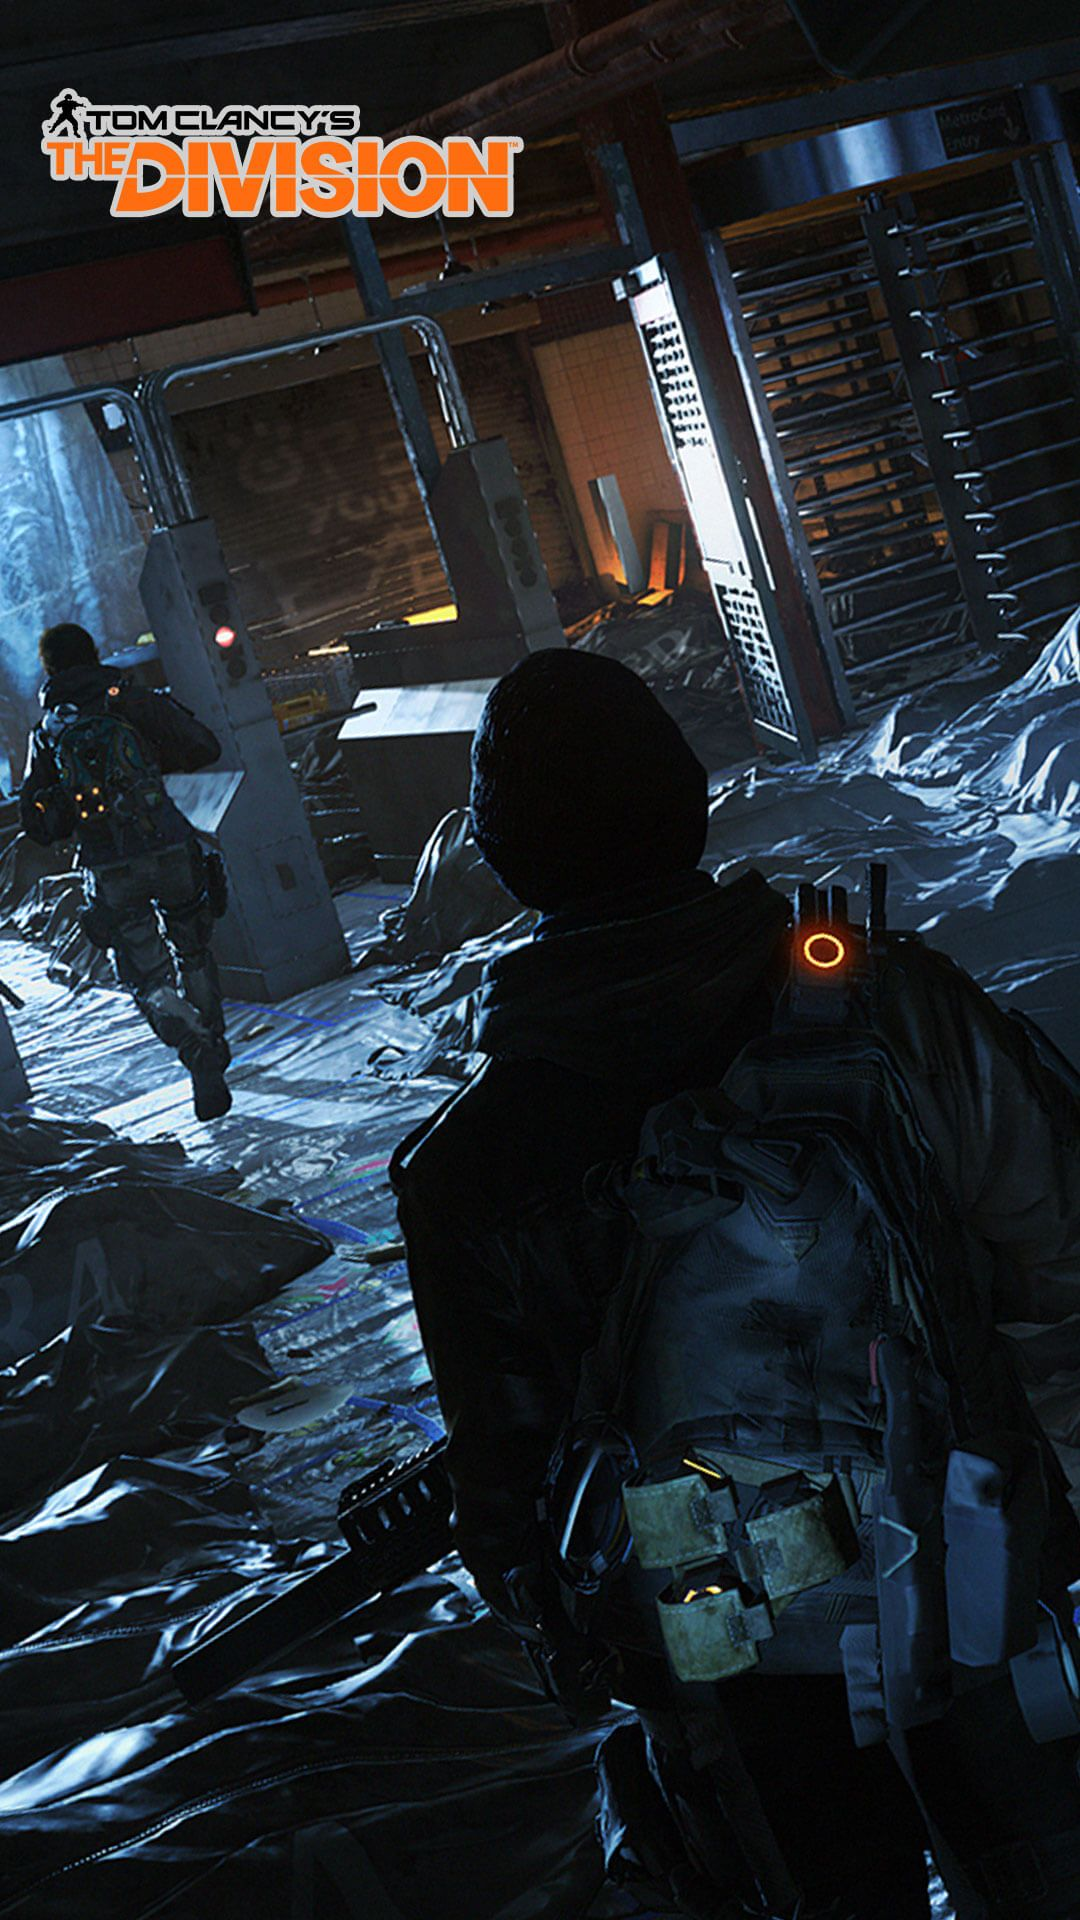 Tom Clancys The Division Iphone 6 Plus Wallpaper Hd Games